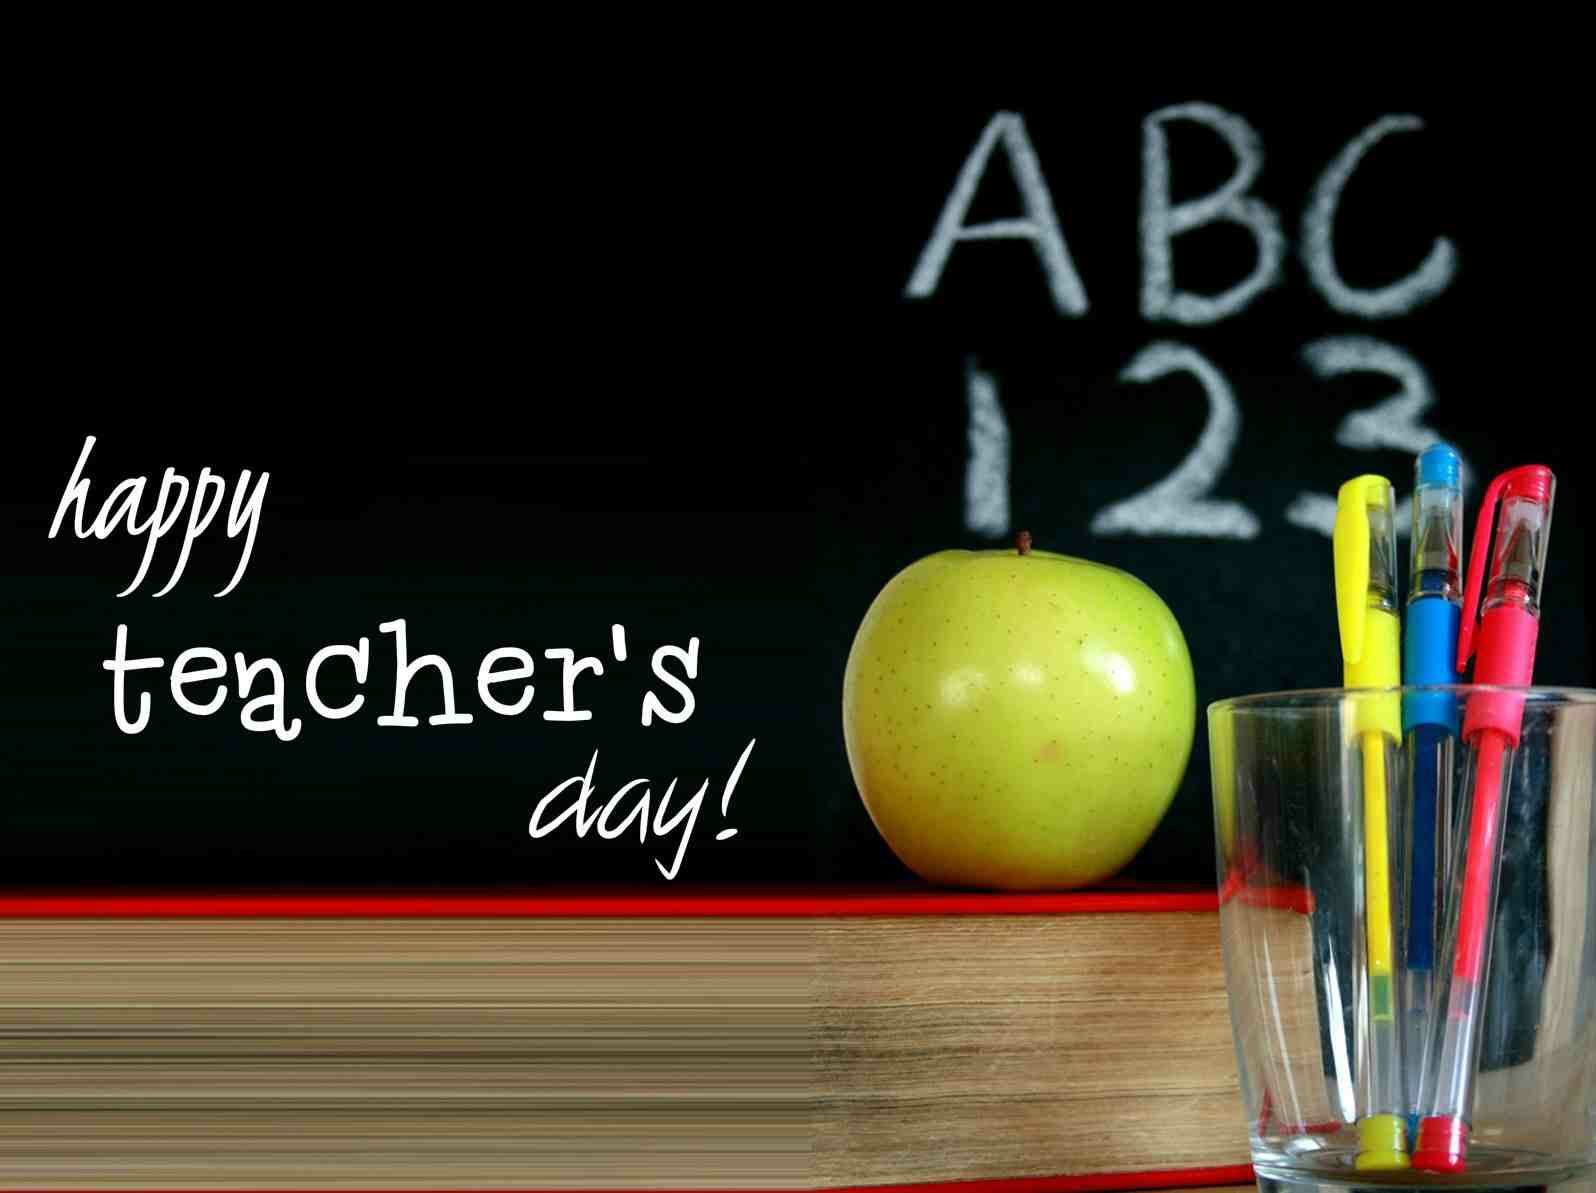 World Teacher Day 2018 351809   HD Wallpaper Download 1596x1193